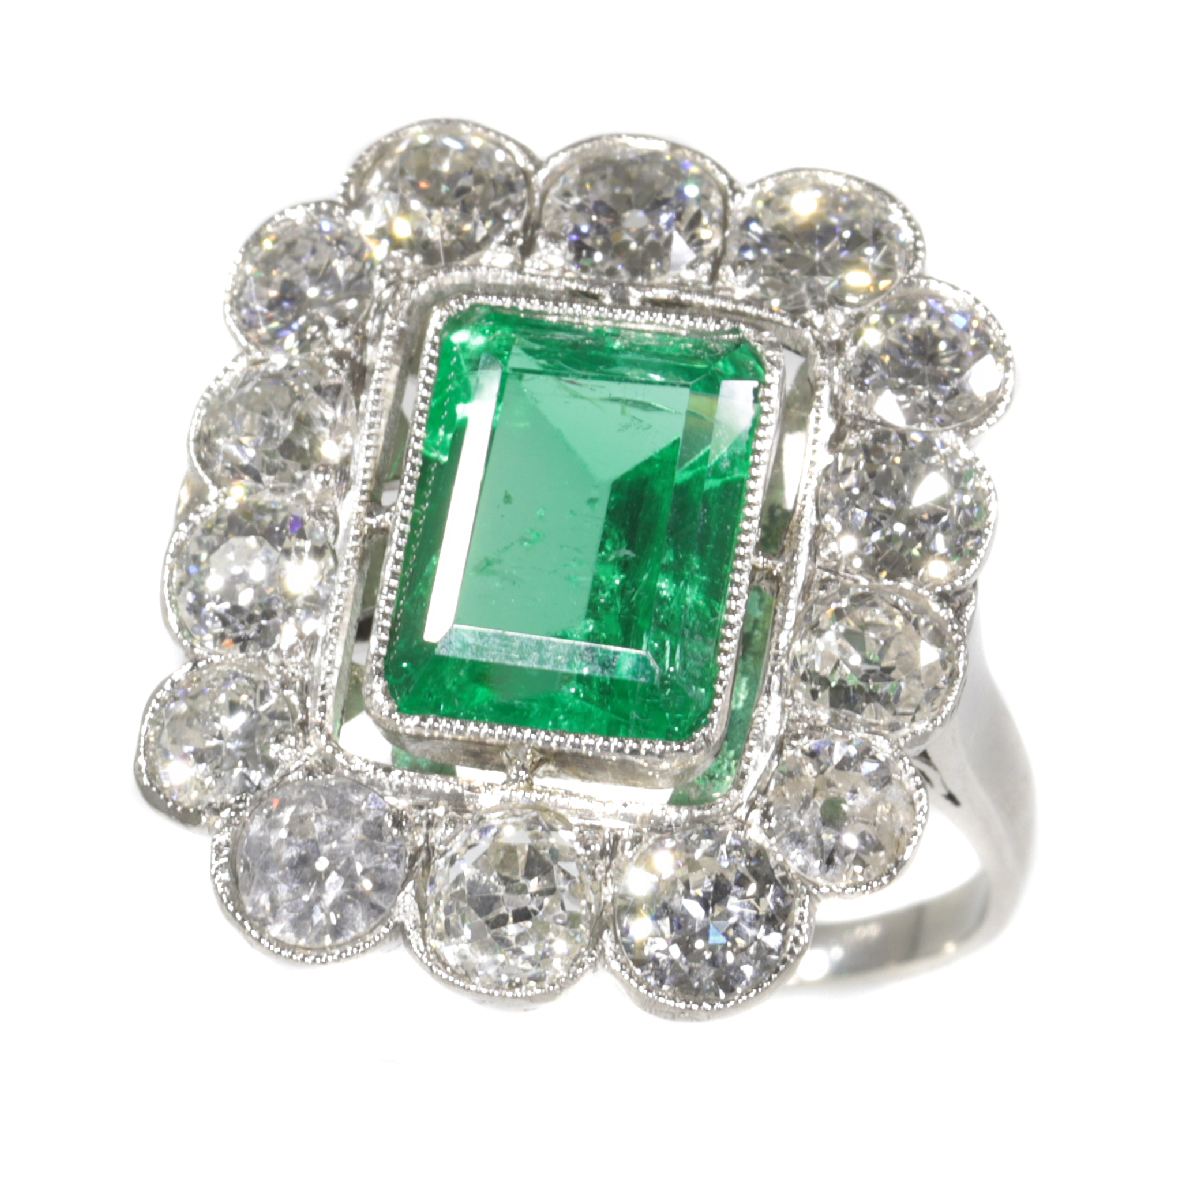 Vintage Fifties platinum diamond ring with untreated natural emerald